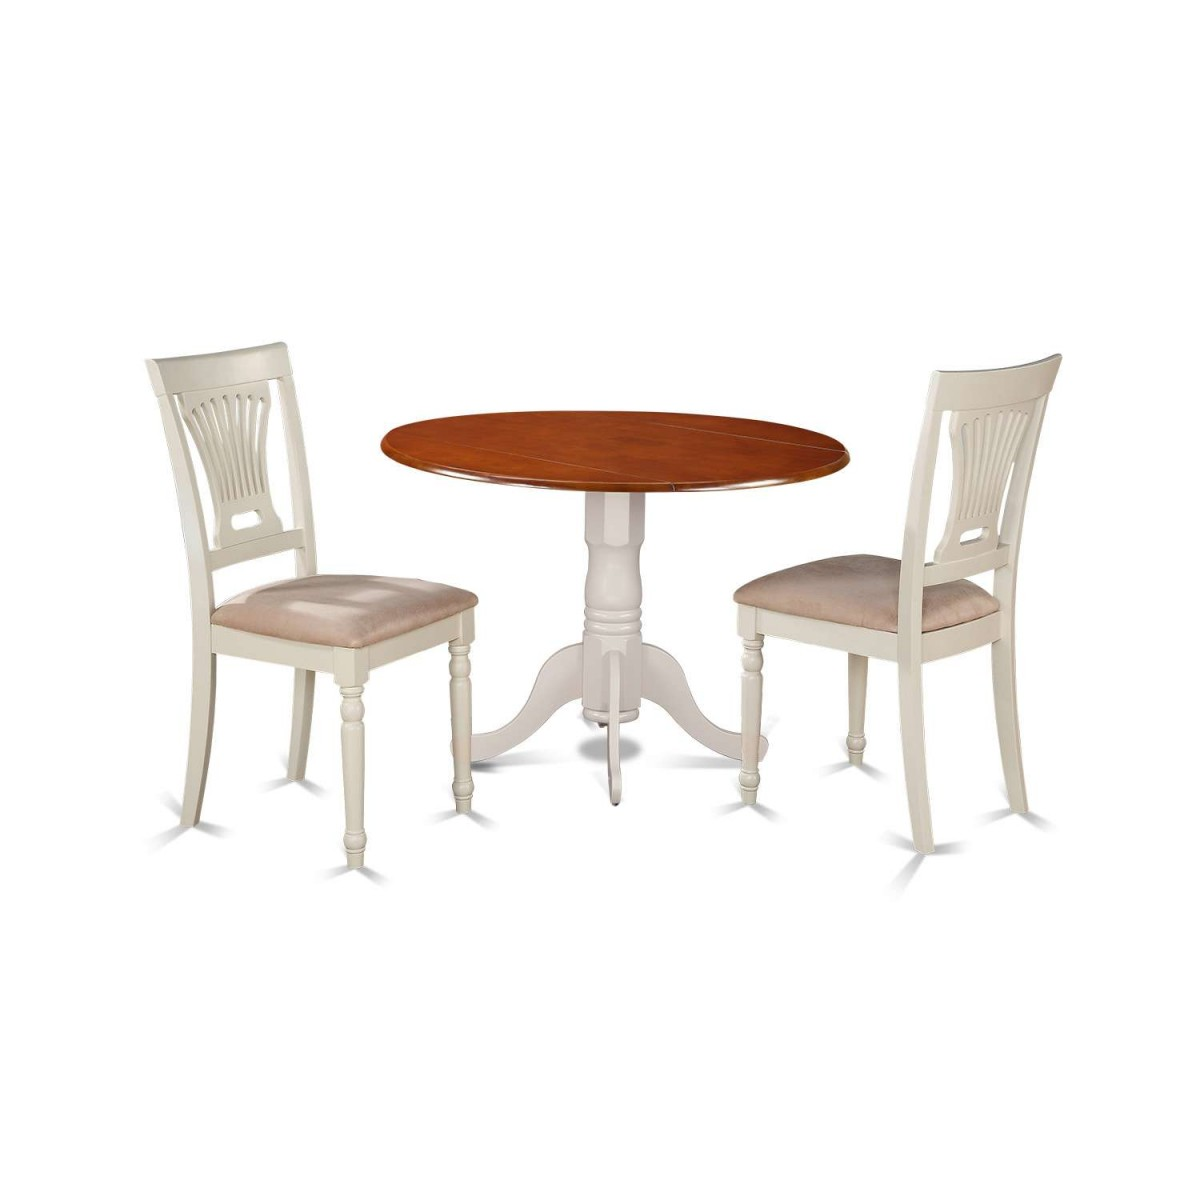 Kitchen Table And Chairs Dublin: East West Furniture Dublin 3 Piece Small Kitchen Table Set